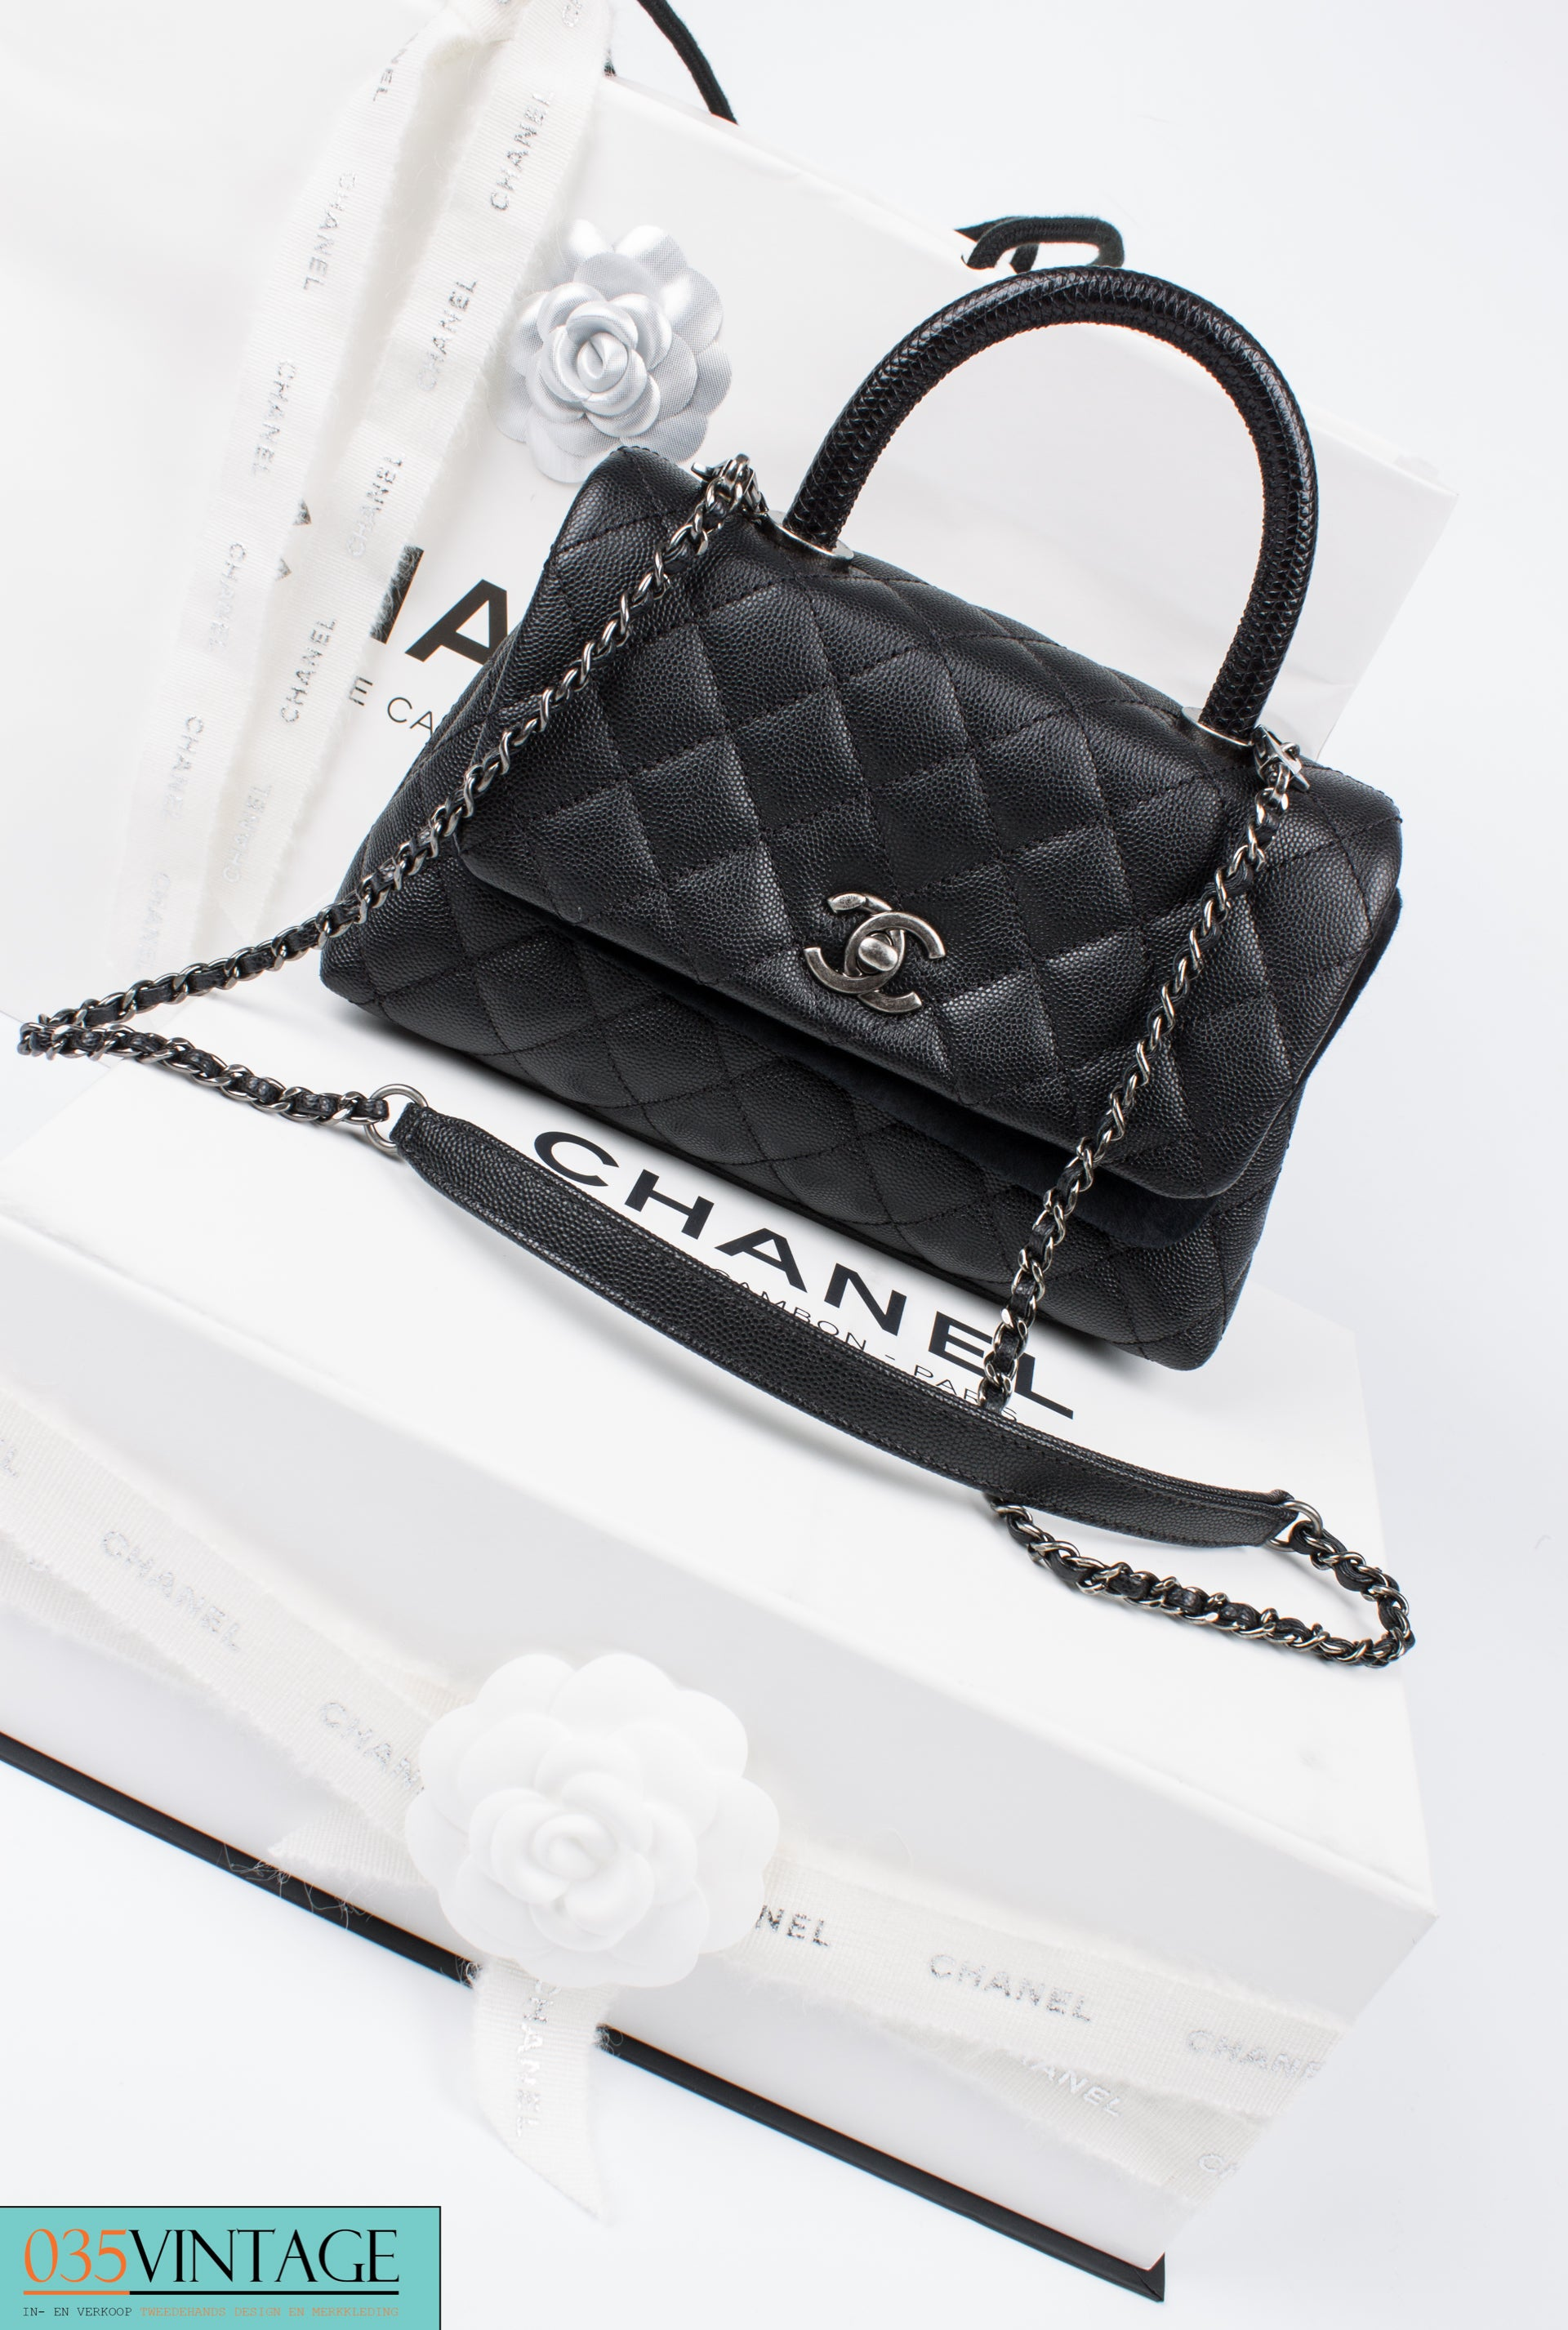 9cb45e08fcdd18 Chanel Coco Handle Flap Bag Mini Lizard and Caviar Quilted Leather - black  at 1stdibs